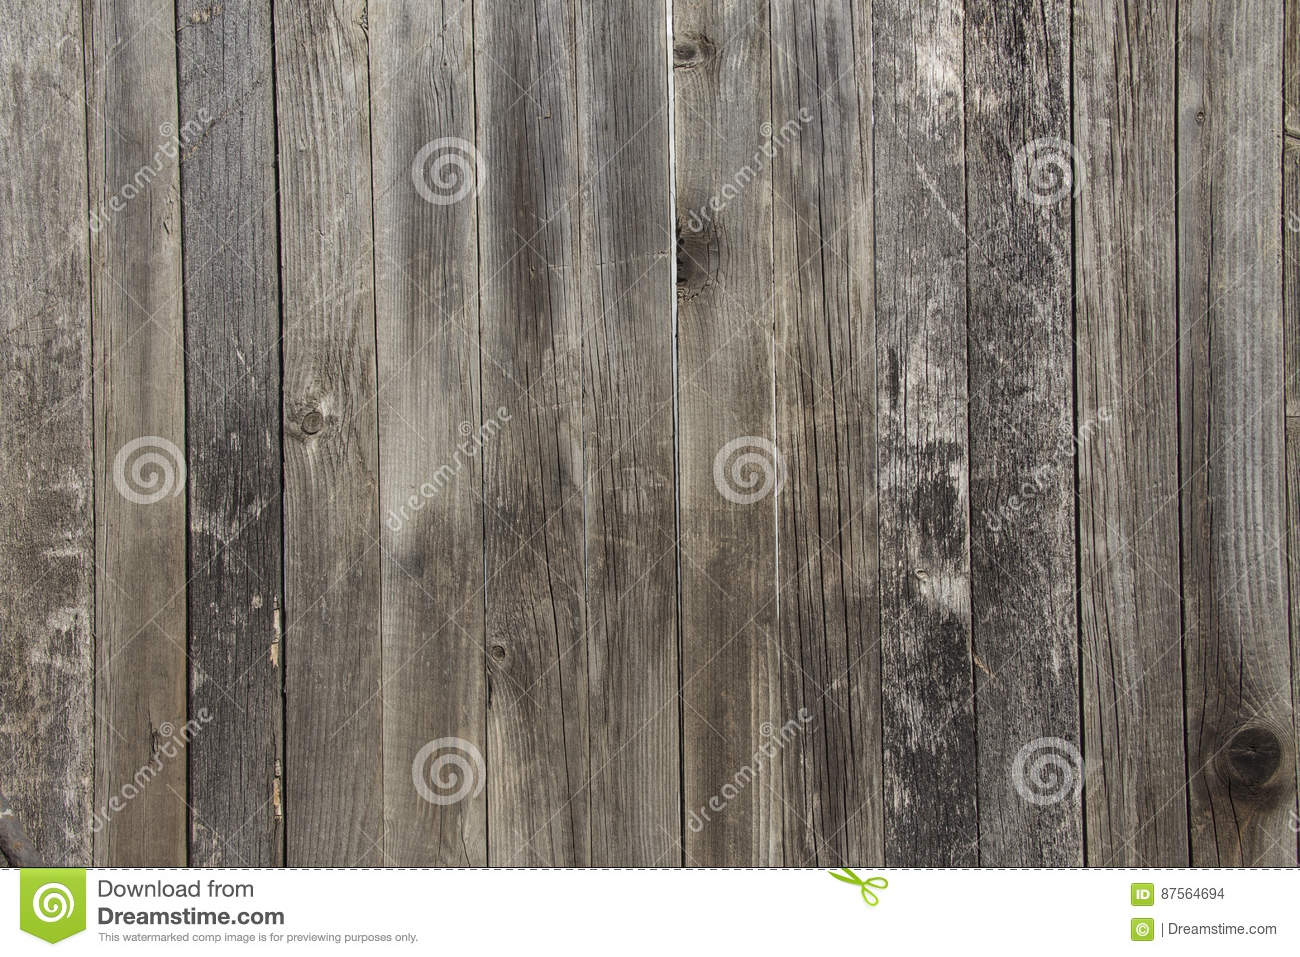 Gray Barn Wooden Wall Planking rektangulär textur Gamla Wood lantliga Grey Shabby Slats Background Riden ut fyrkant S för ädelträ